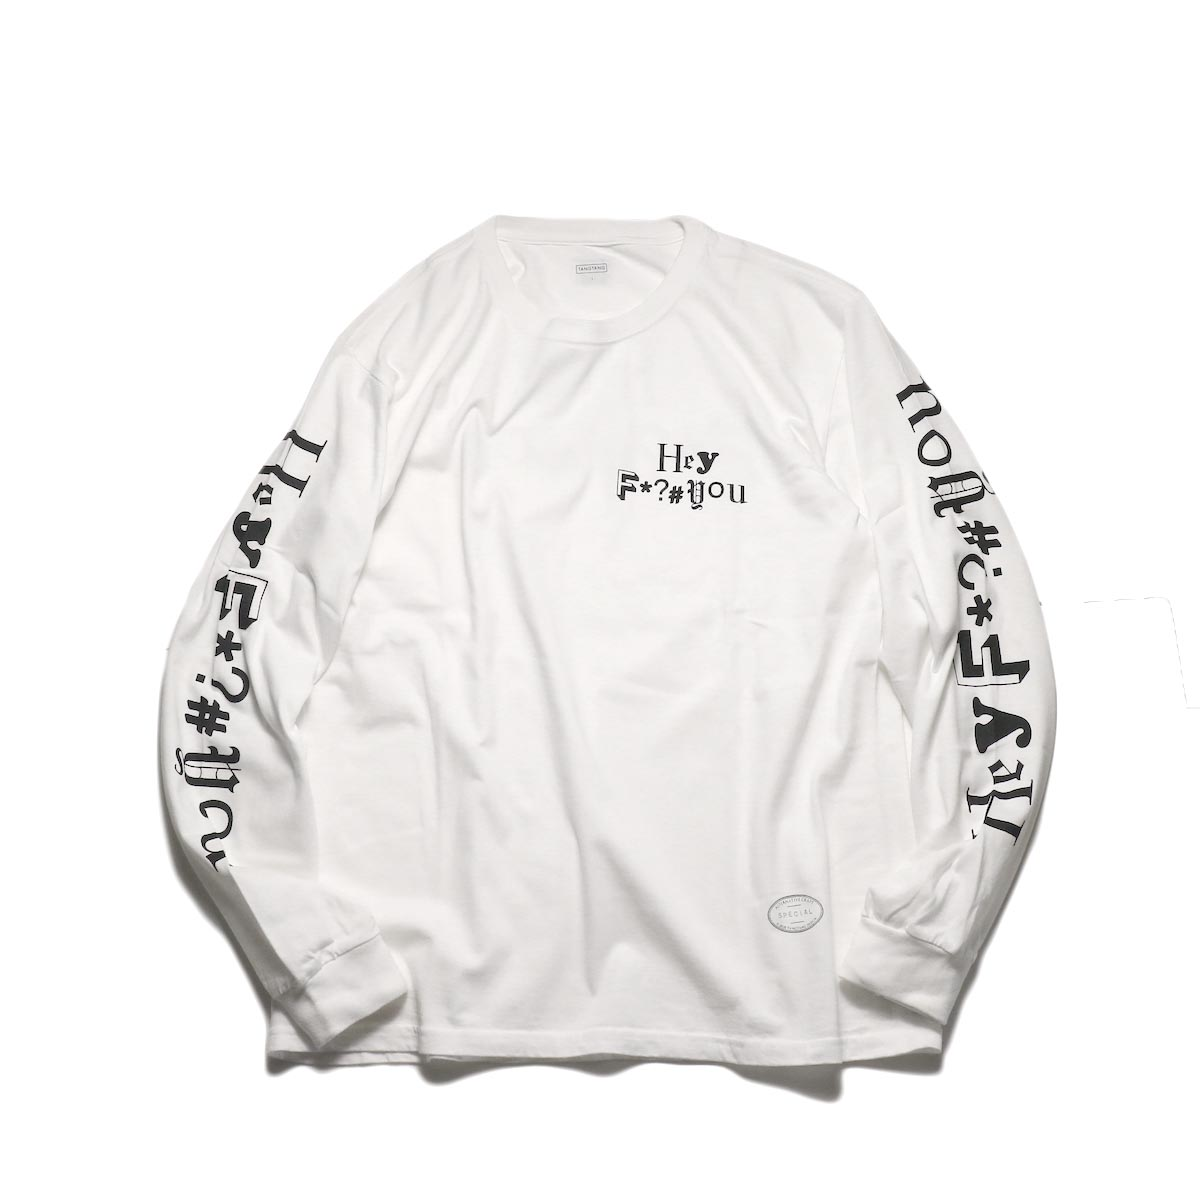 TANGTANG / F*?#you -AW2020 (White)正面